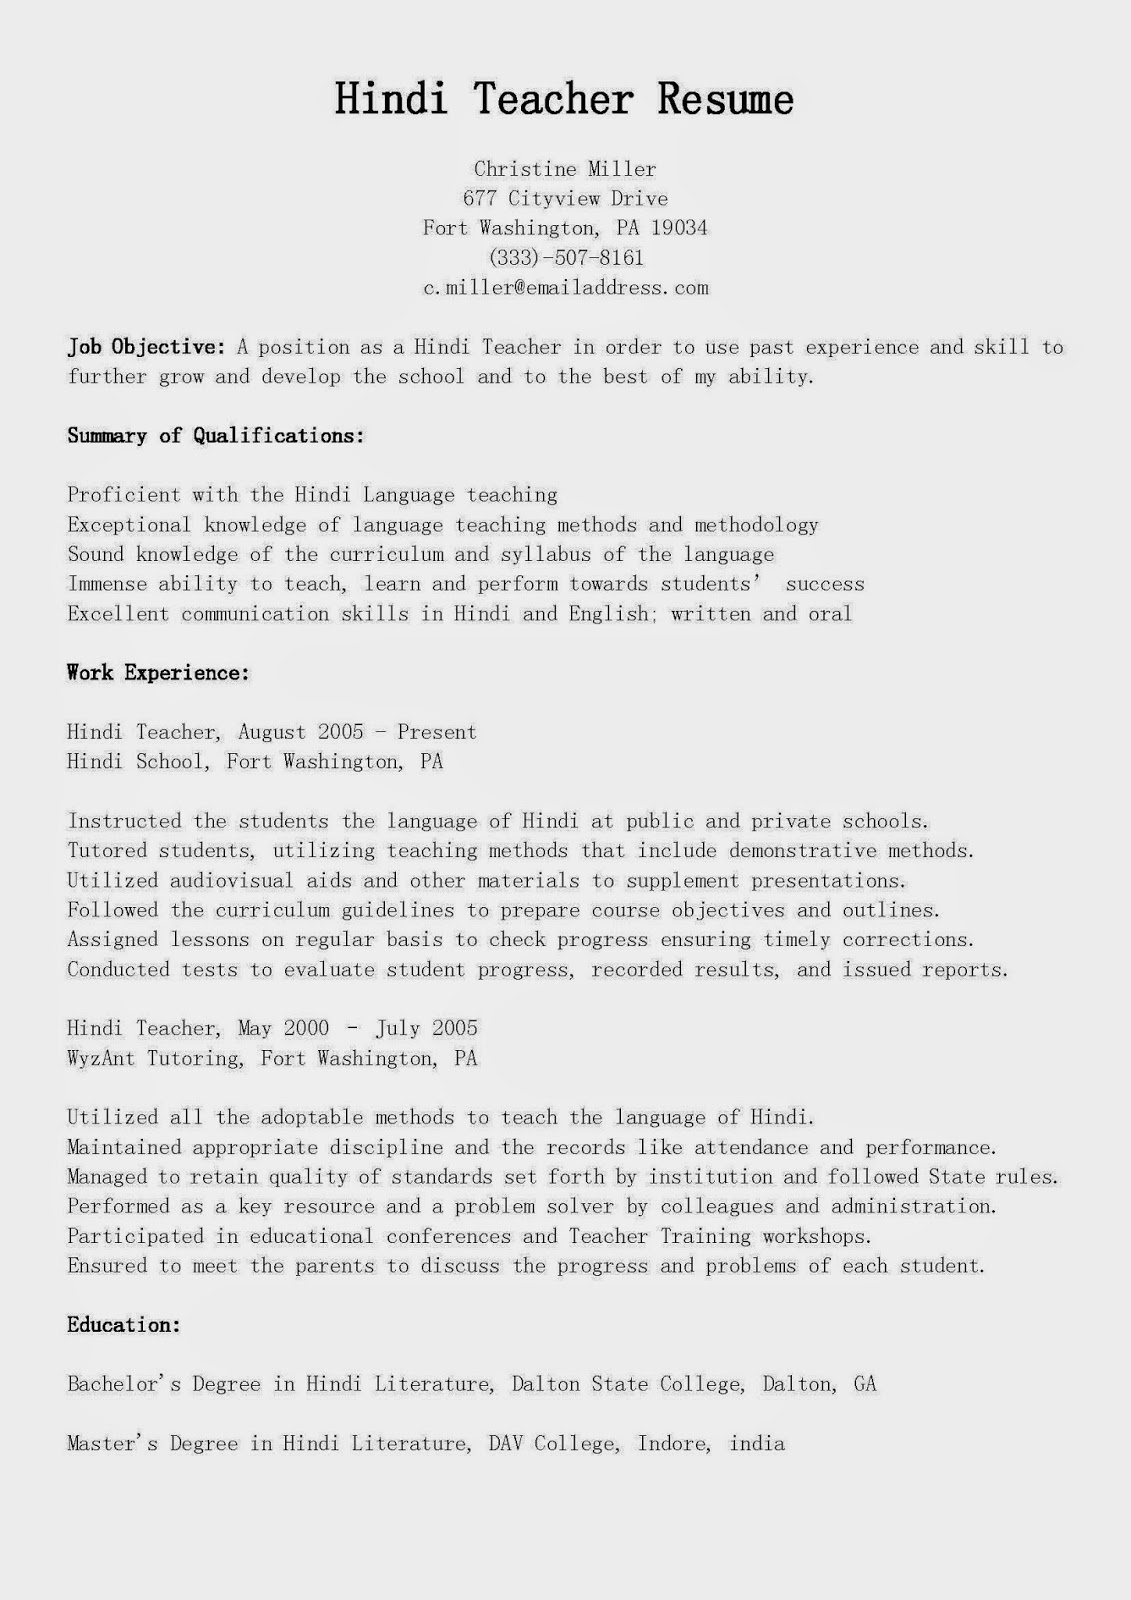 biodata format for primary teacher job resume builder biodata format for primary teacher job sample of students biodata form resume form esl teacher maths